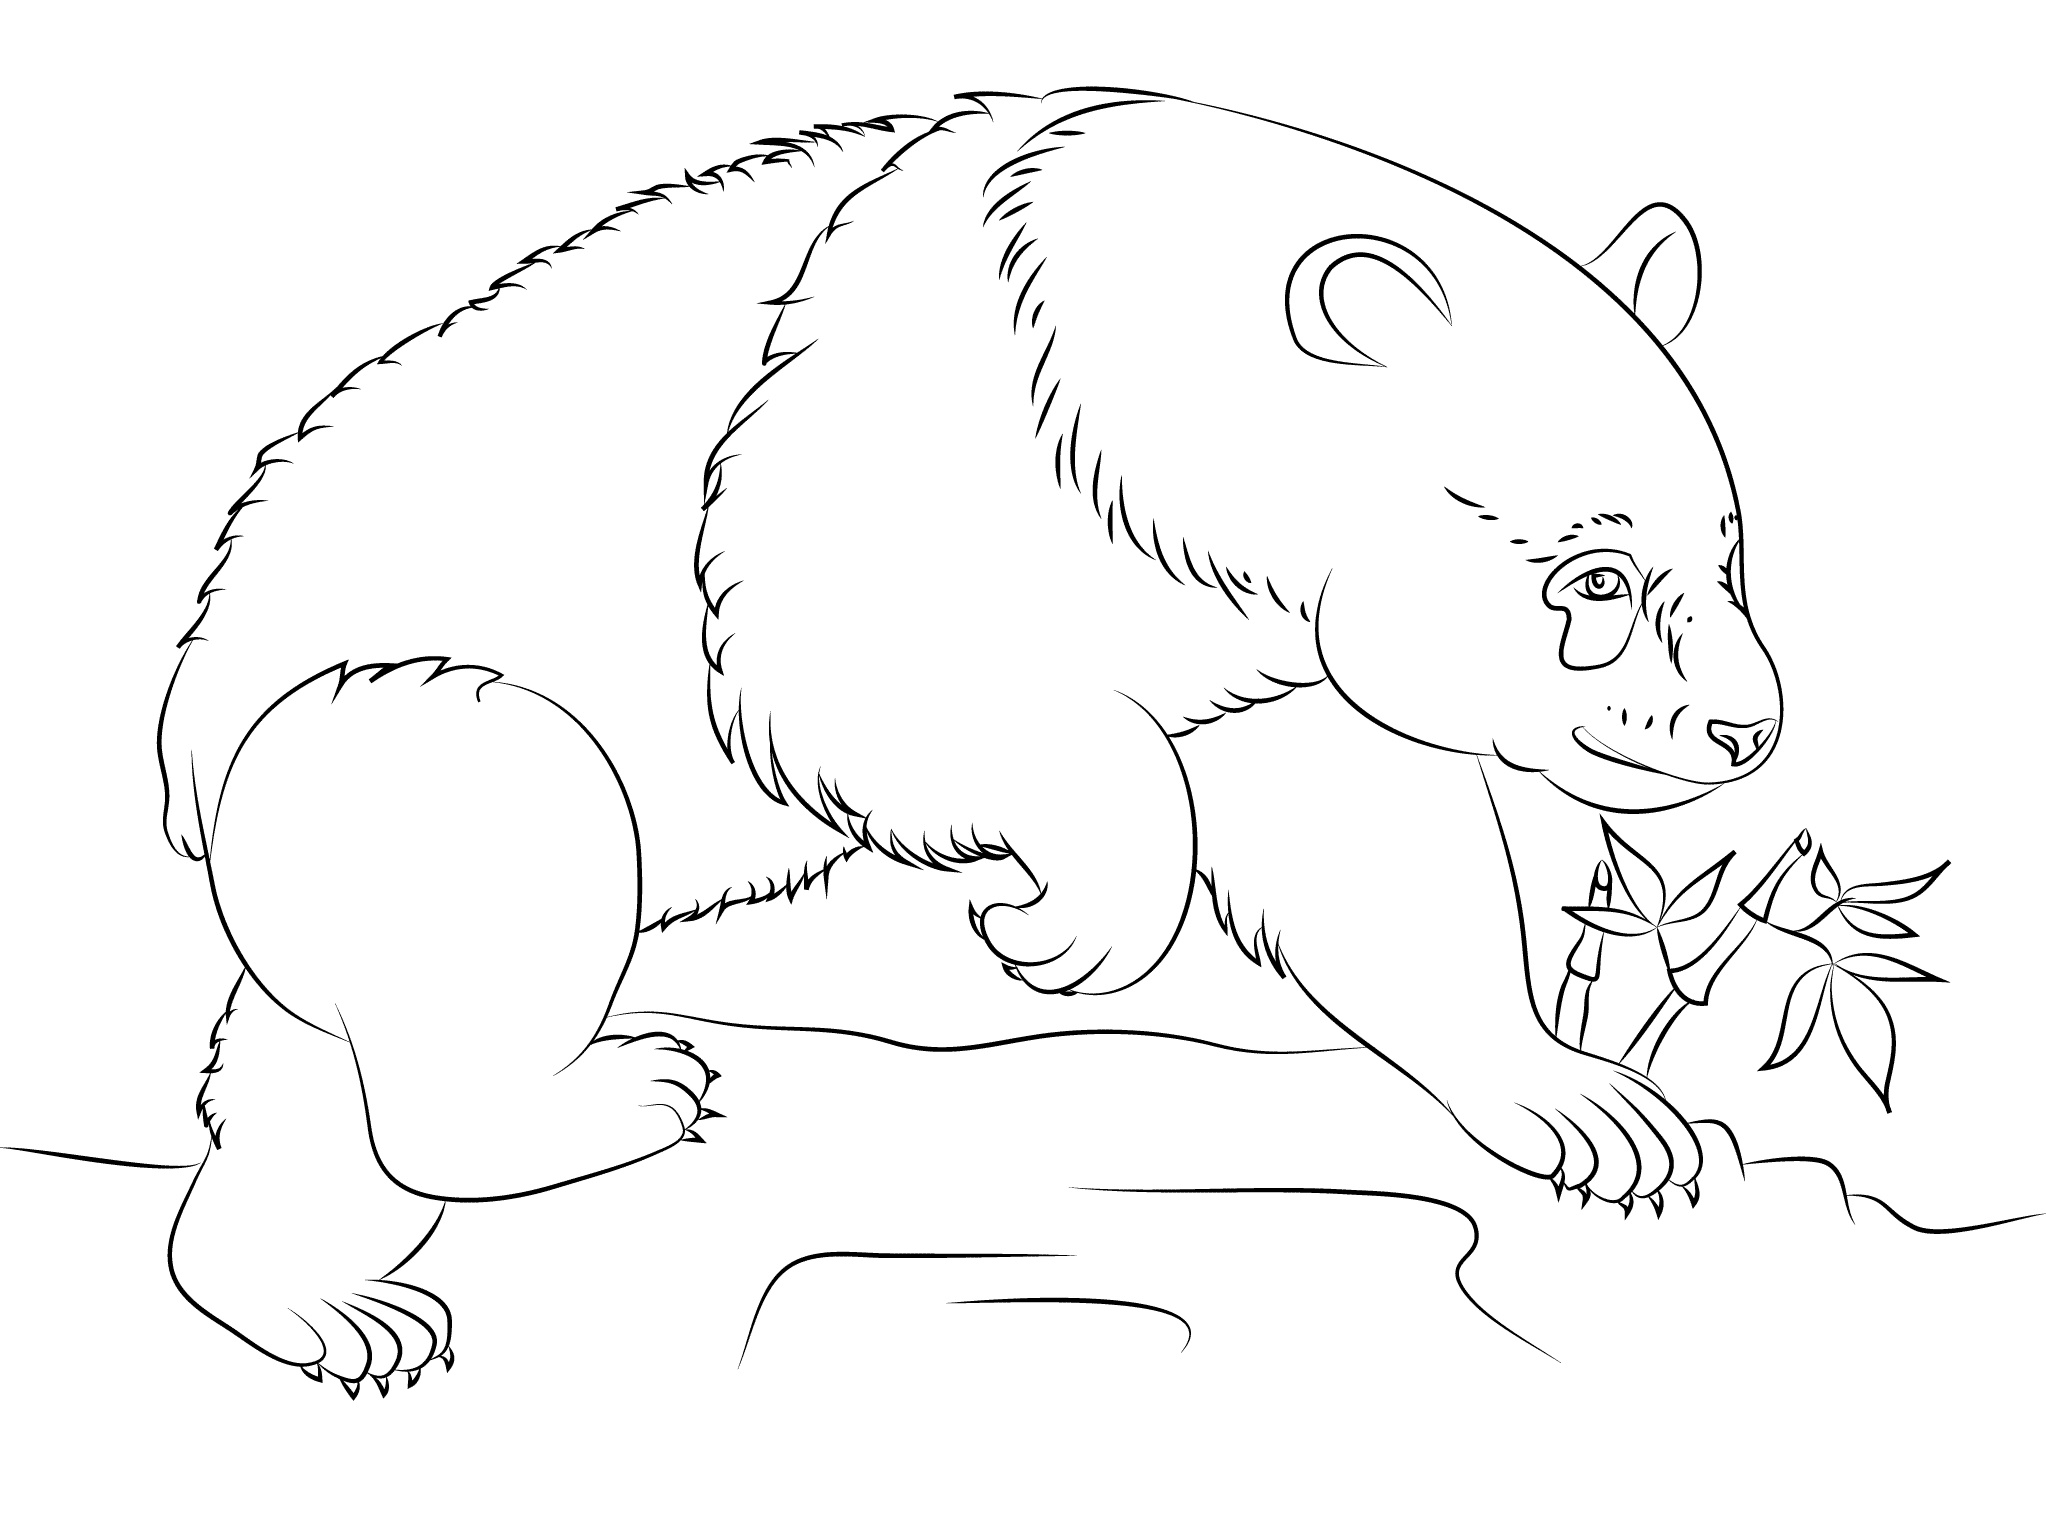 Panda Bear Coloring Pages For Coloring Or Drawing Class